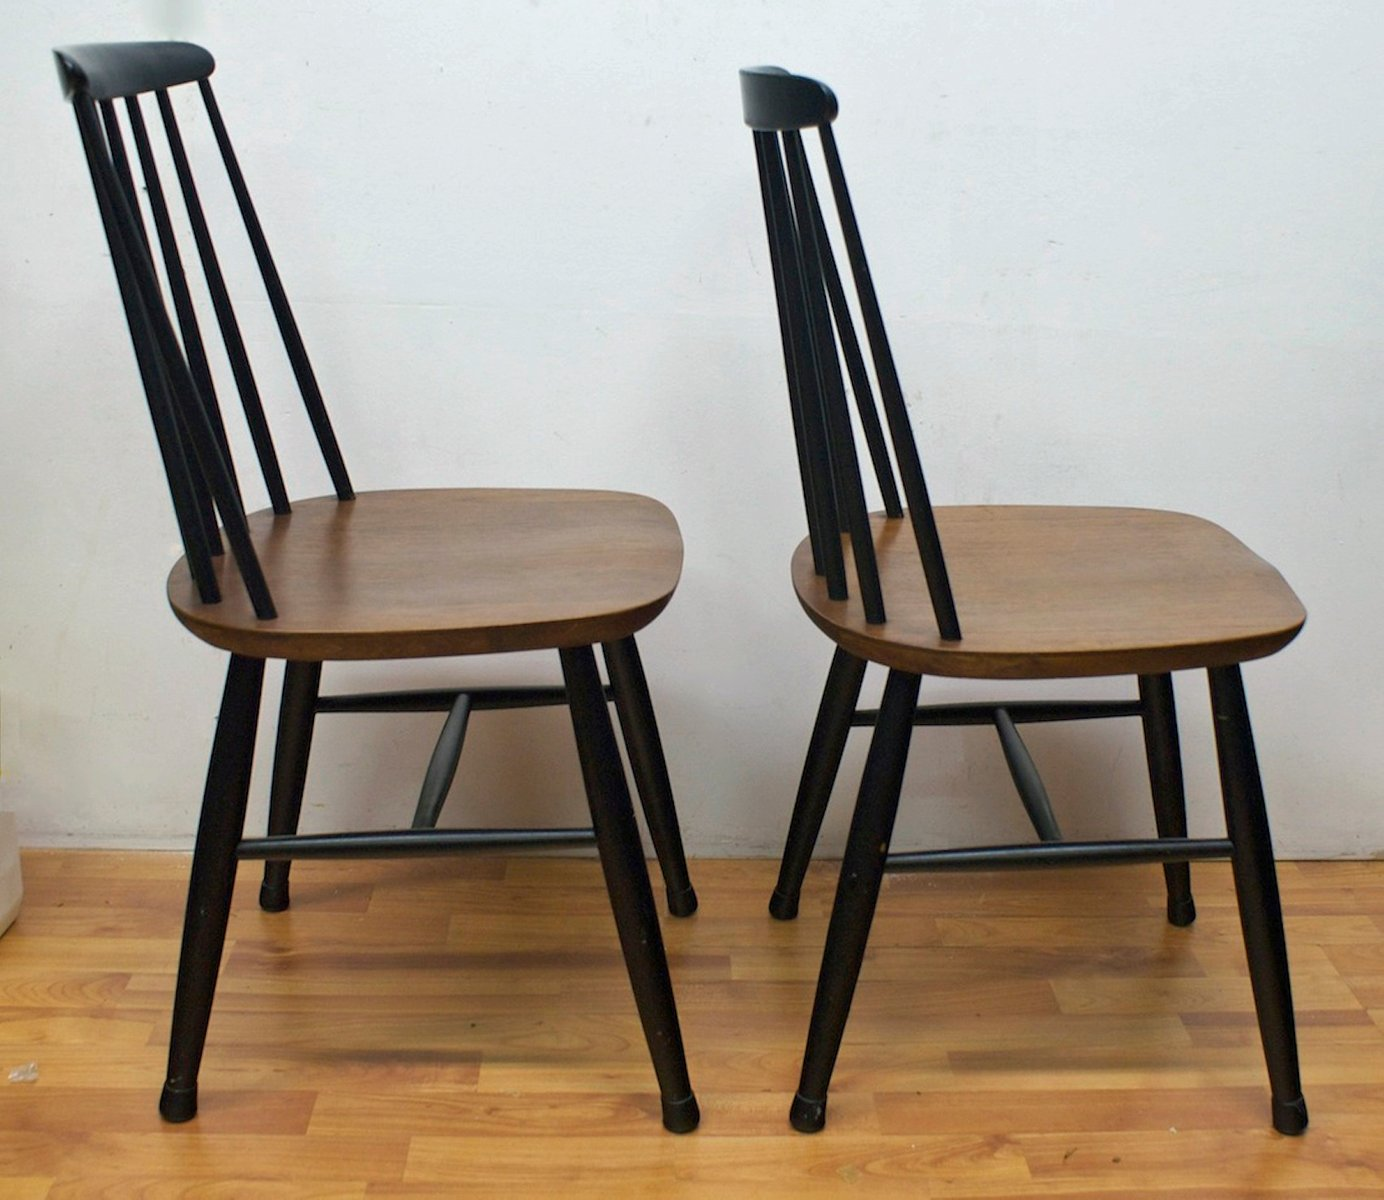 set of 2 dining chairs wicker lowes 1960s for sale at pamono